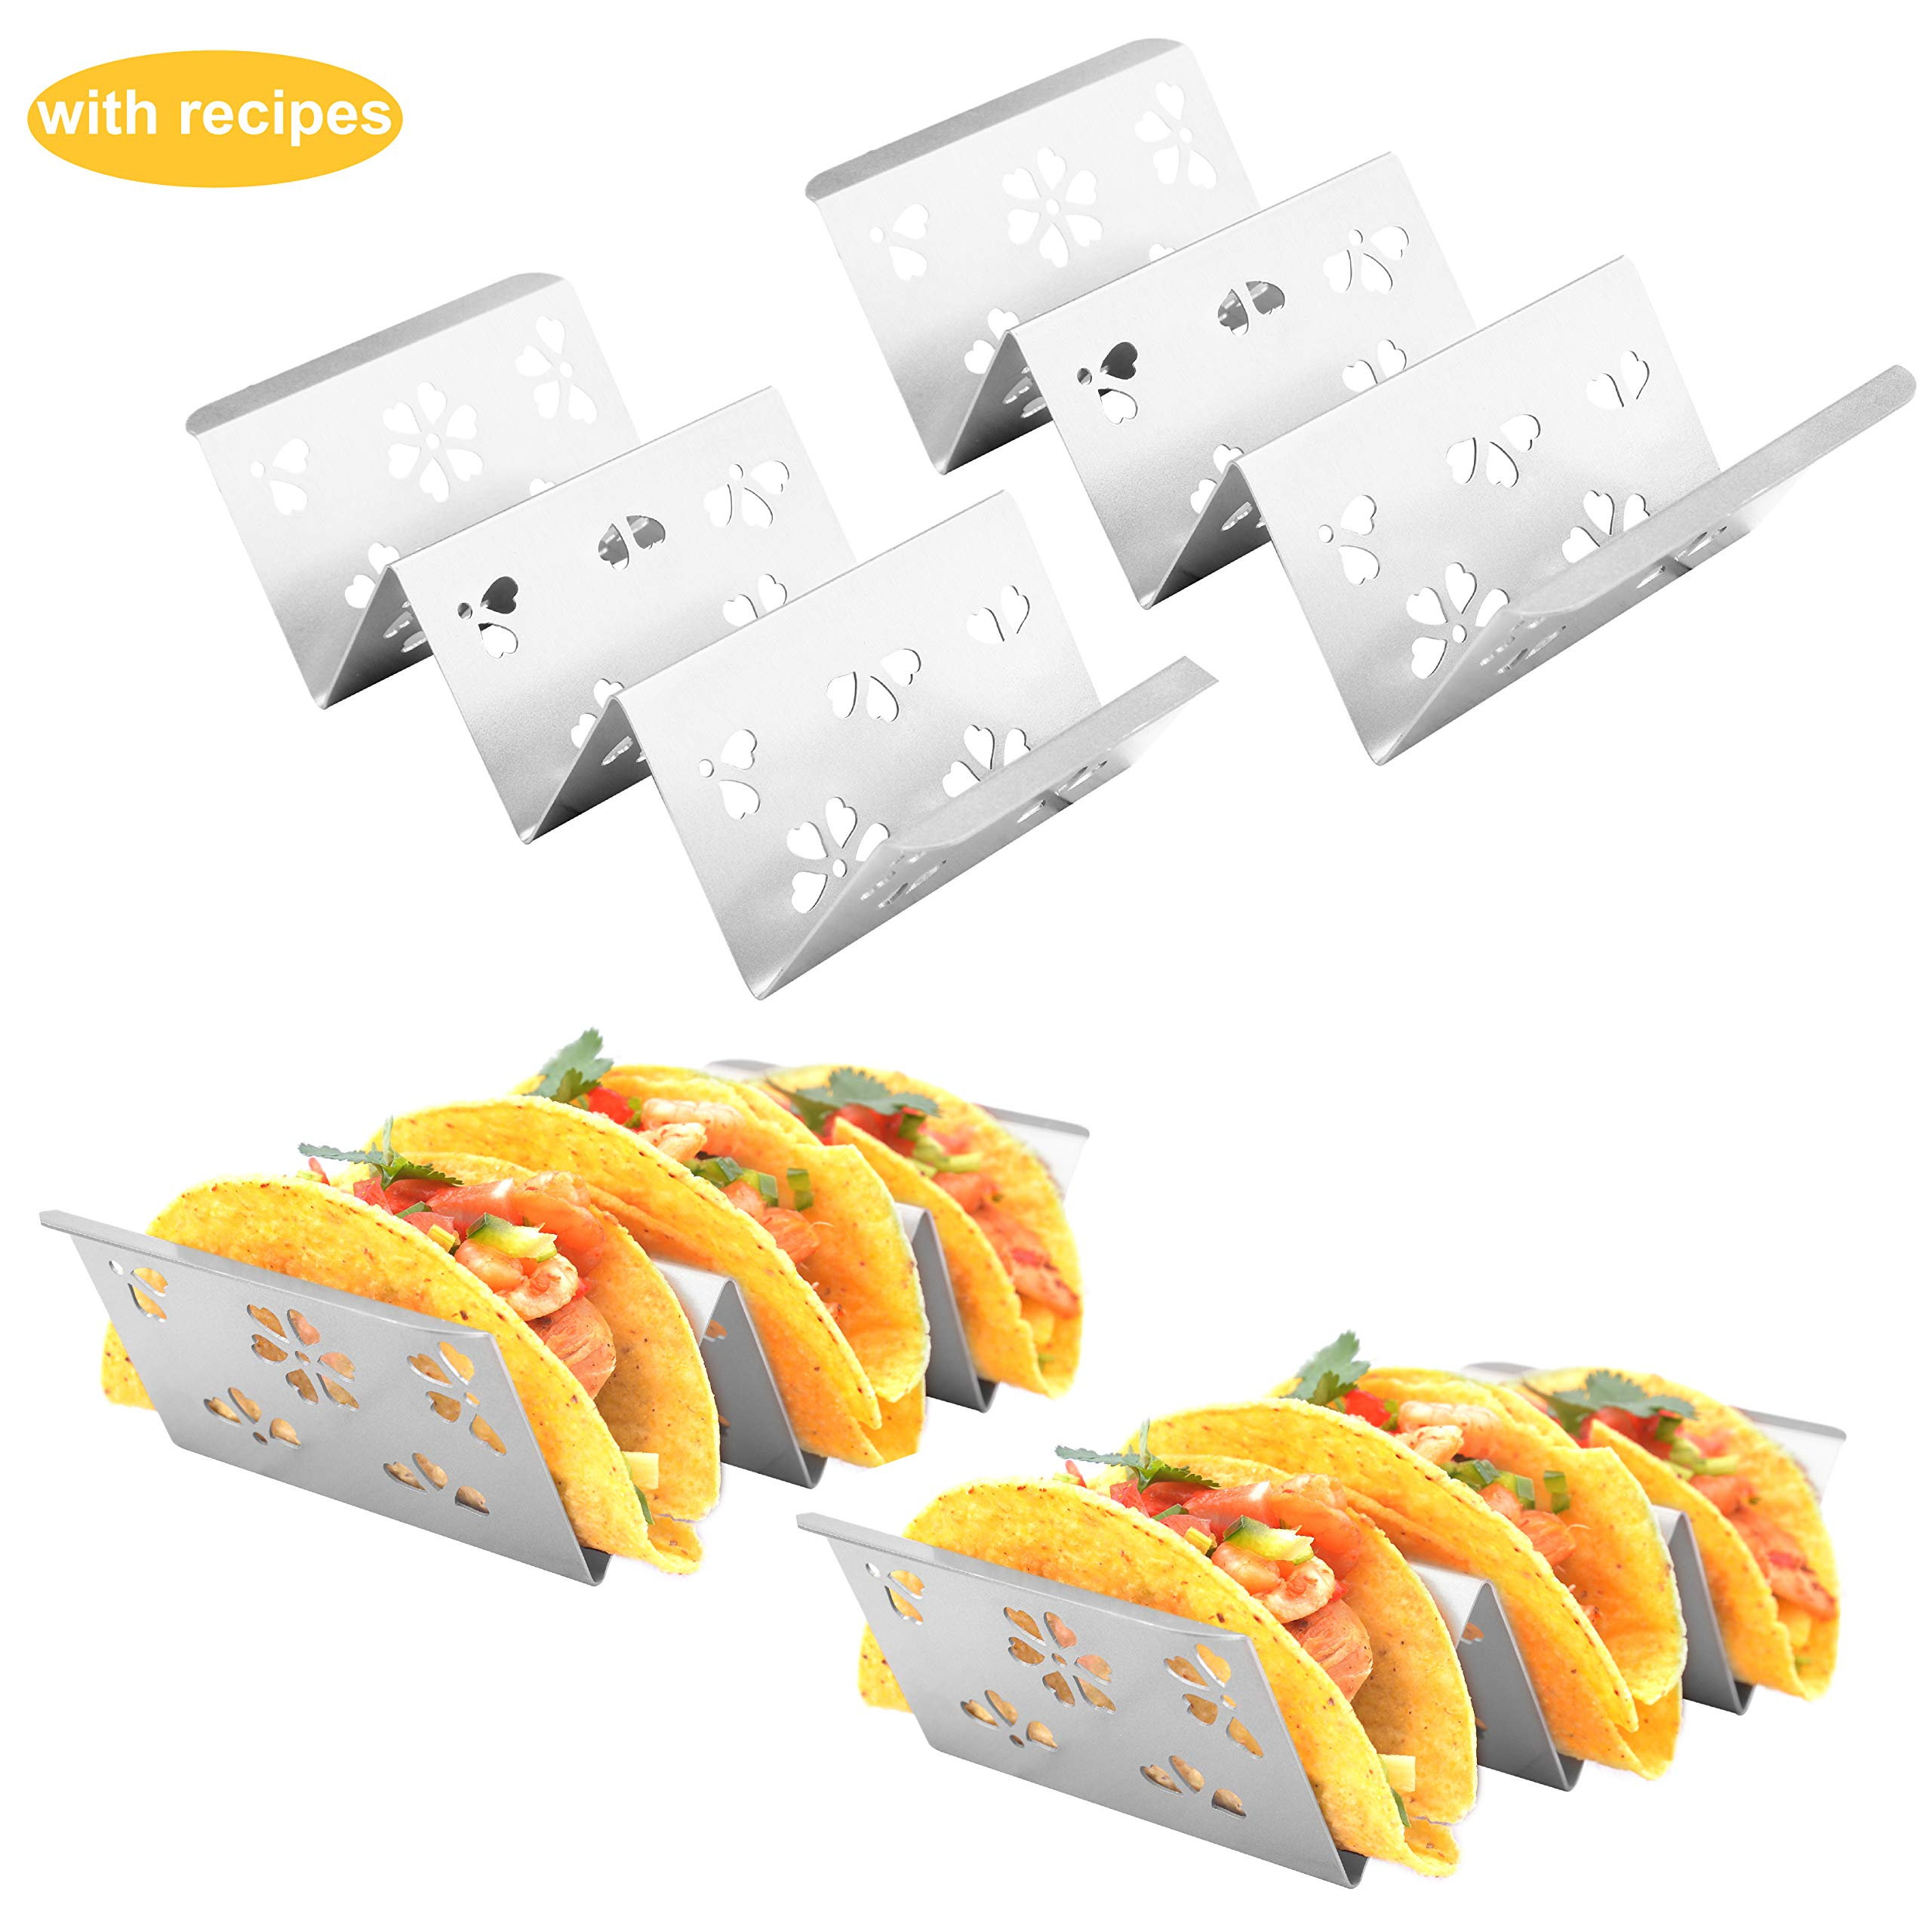 Yoku Made 4 Pack Stylish Designed Stainless Steel Taco Holder with Handles for Hard and Soft Tacos, w Flower Die Cut, No Sharp Edges No Rust, Dishwasher Safe, Oven Safe, Grill Safe by Yoku Made